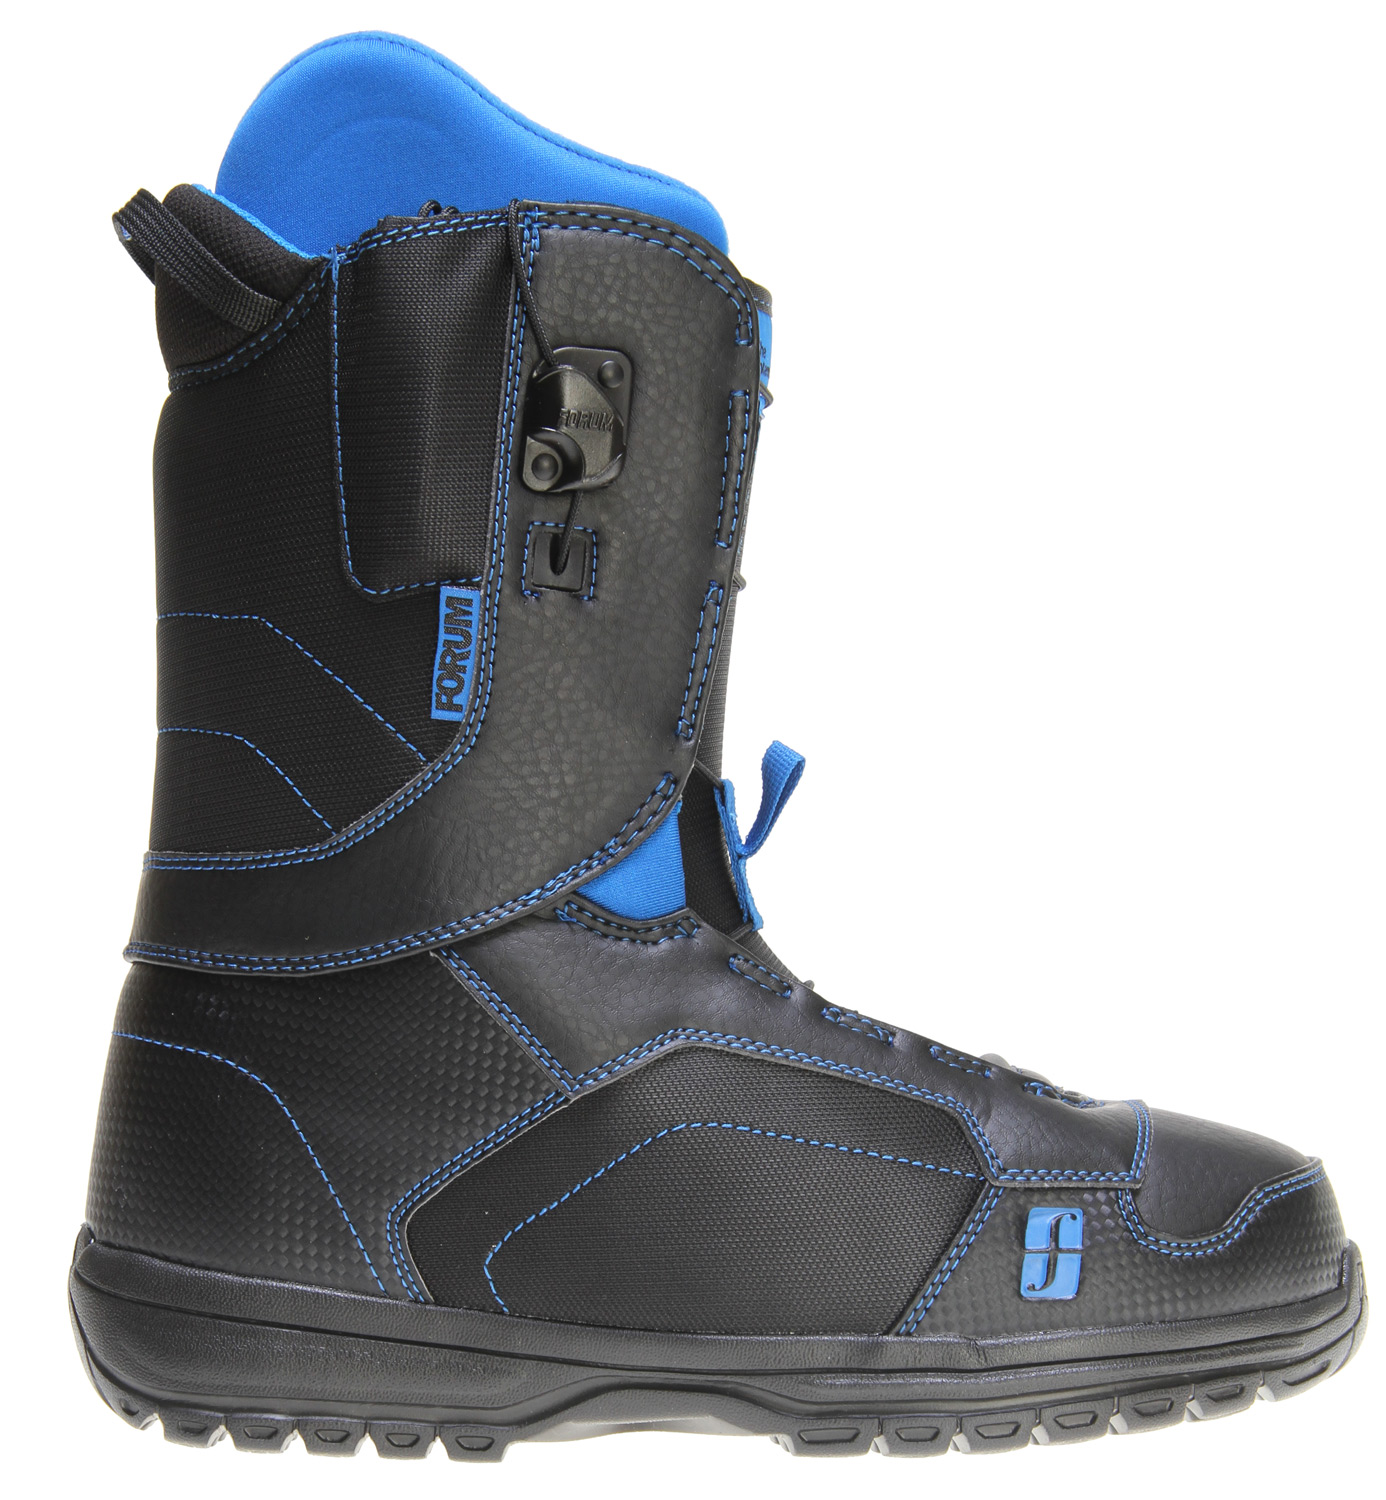 Snowboard Make it Happen Other brands would offer this boot for nearly double the price with half the features. It's not only the lightest park boot with Speed Zone lacing, but it also comes packed with comfort, from the Integrated liner and the Origin injected outsole. Constructed with Forever Fit, the Antenna will maintain its comfortable fit all season long, park lap after lap. The Antenna's got you dialed in this winter. Key Features of the Forum Antenna Snowboard Boots: Liner: Integrated Comfort and Grip: Origin injected outsole Footbed: Level 1 Lacing: Speed Zone Additional Forever Fit construction Flex: 3 - $90.95